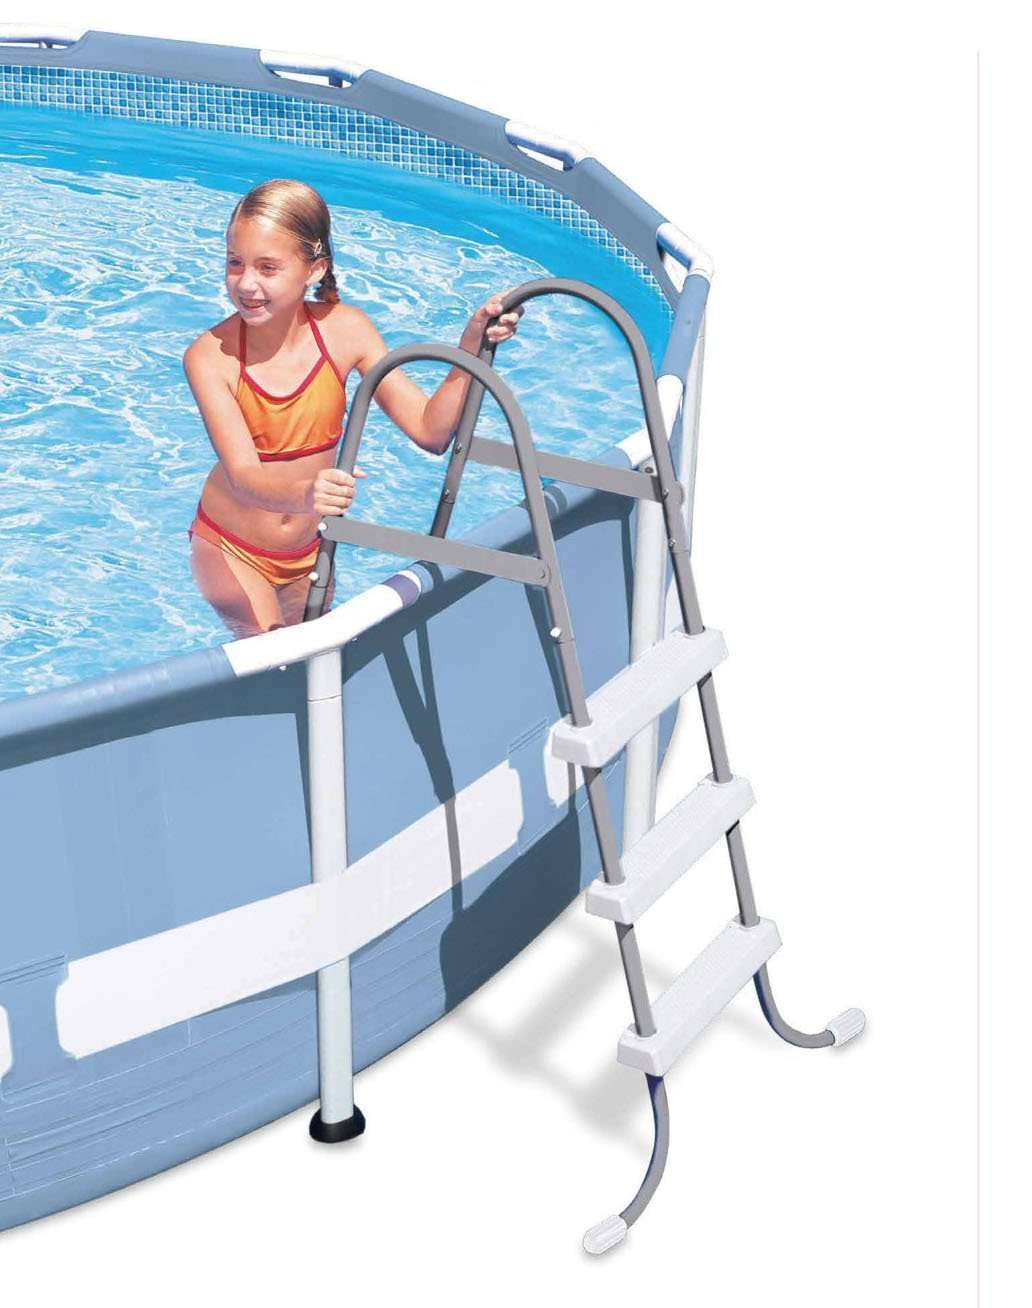 Intex Above Ground Pool Ladder for 42 Inch Wall Height ...